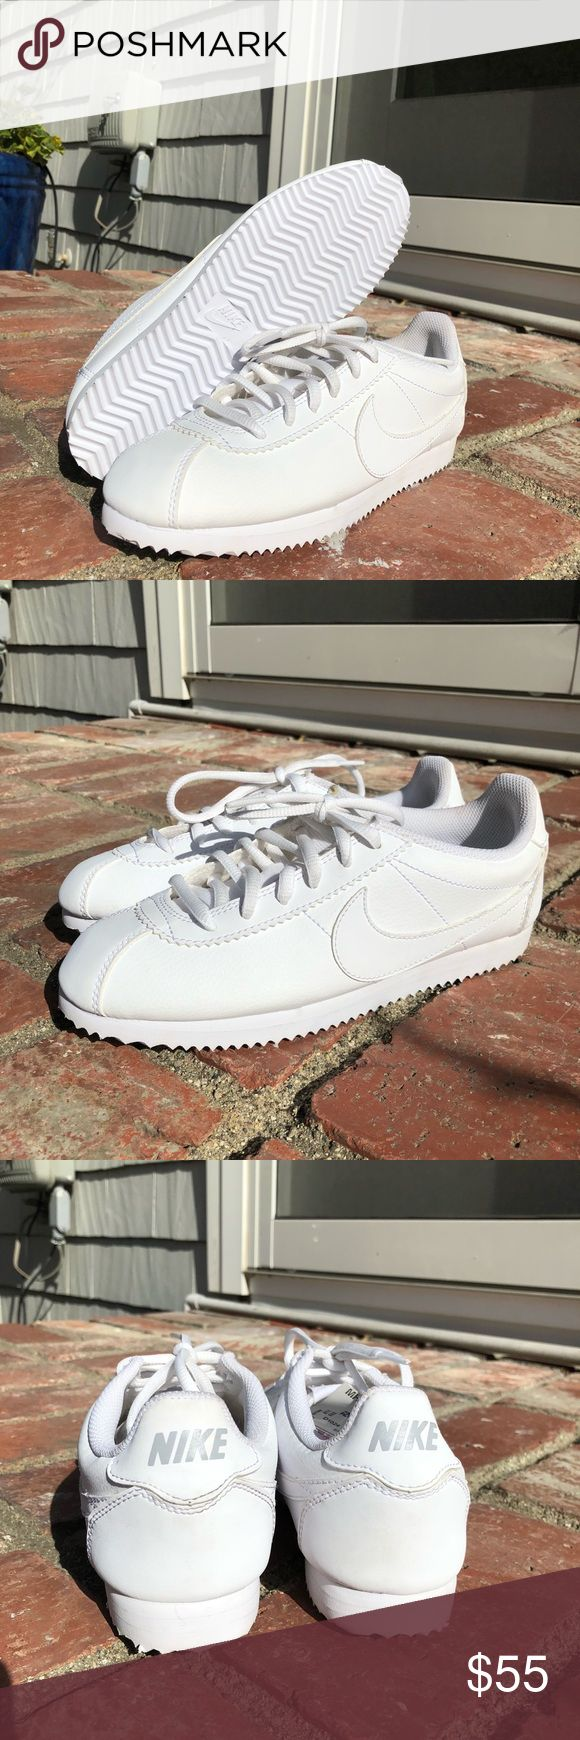 Nike Cortez white Brand new all white Nike Cortez! Size 5.5Y which is 7 women's. These are a classic shoe in a simple color way! Nike Shoes Sneakers